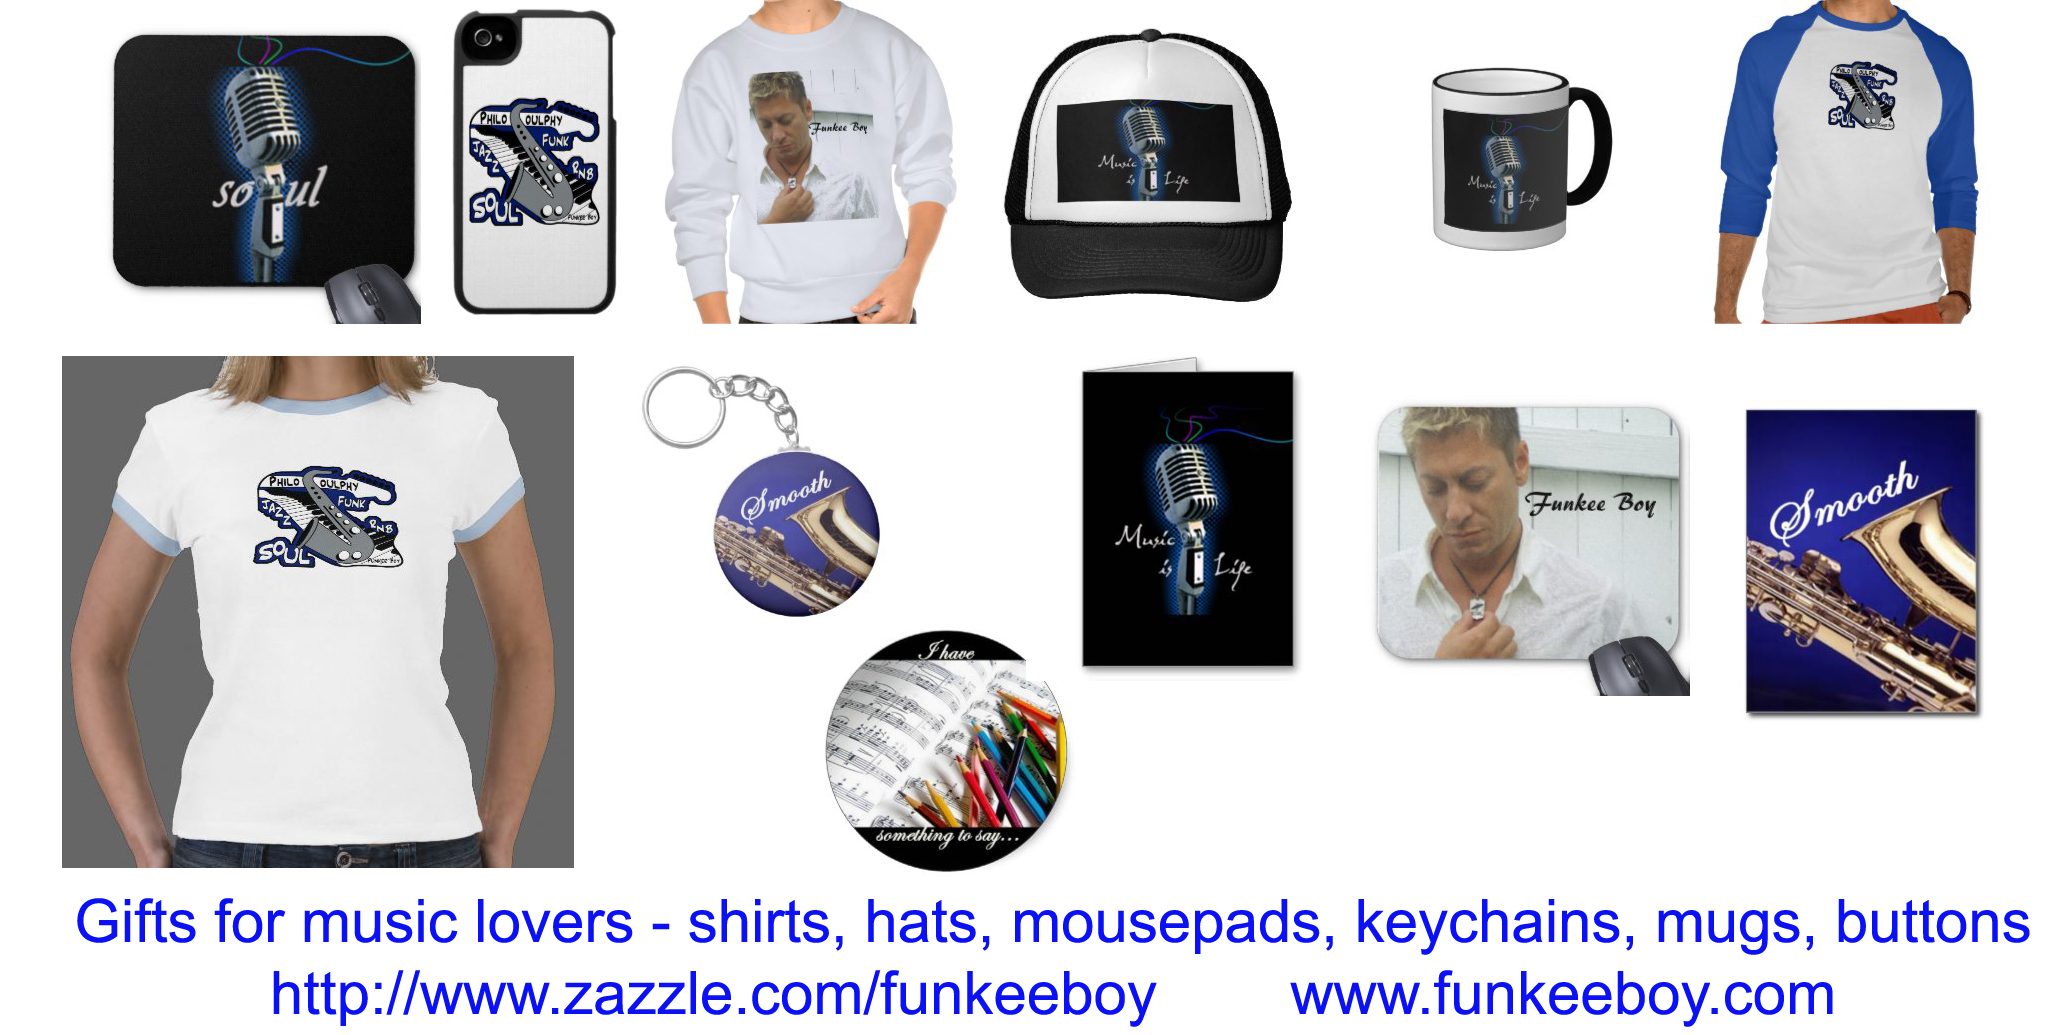 gifts for music lovers, songwriters, musicians, singers, mugs, shirts, studio, recording, hats